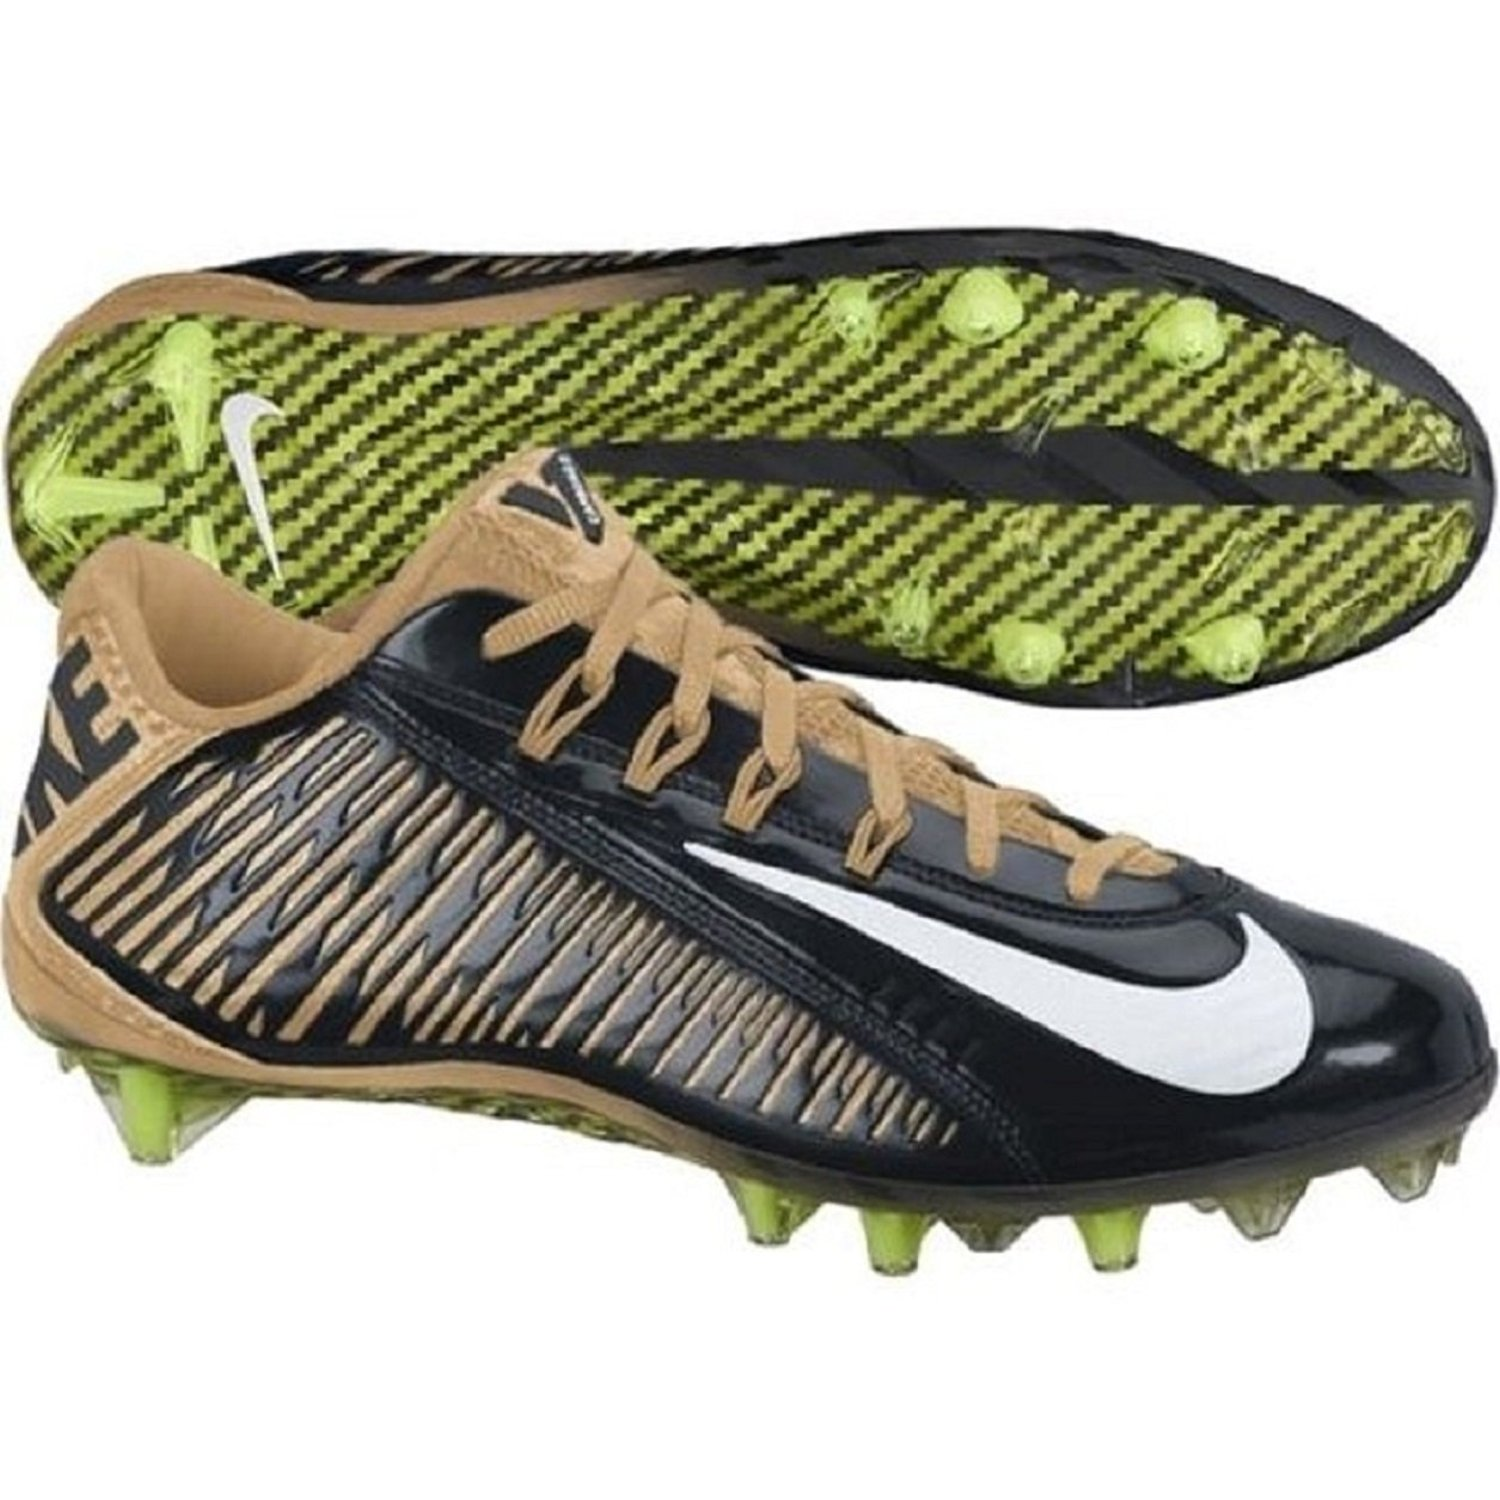 b95536849ab5 Nike Vapor Carbon 2.0 Elite Flywire TD PF Football Cleats Mens Gold Saints